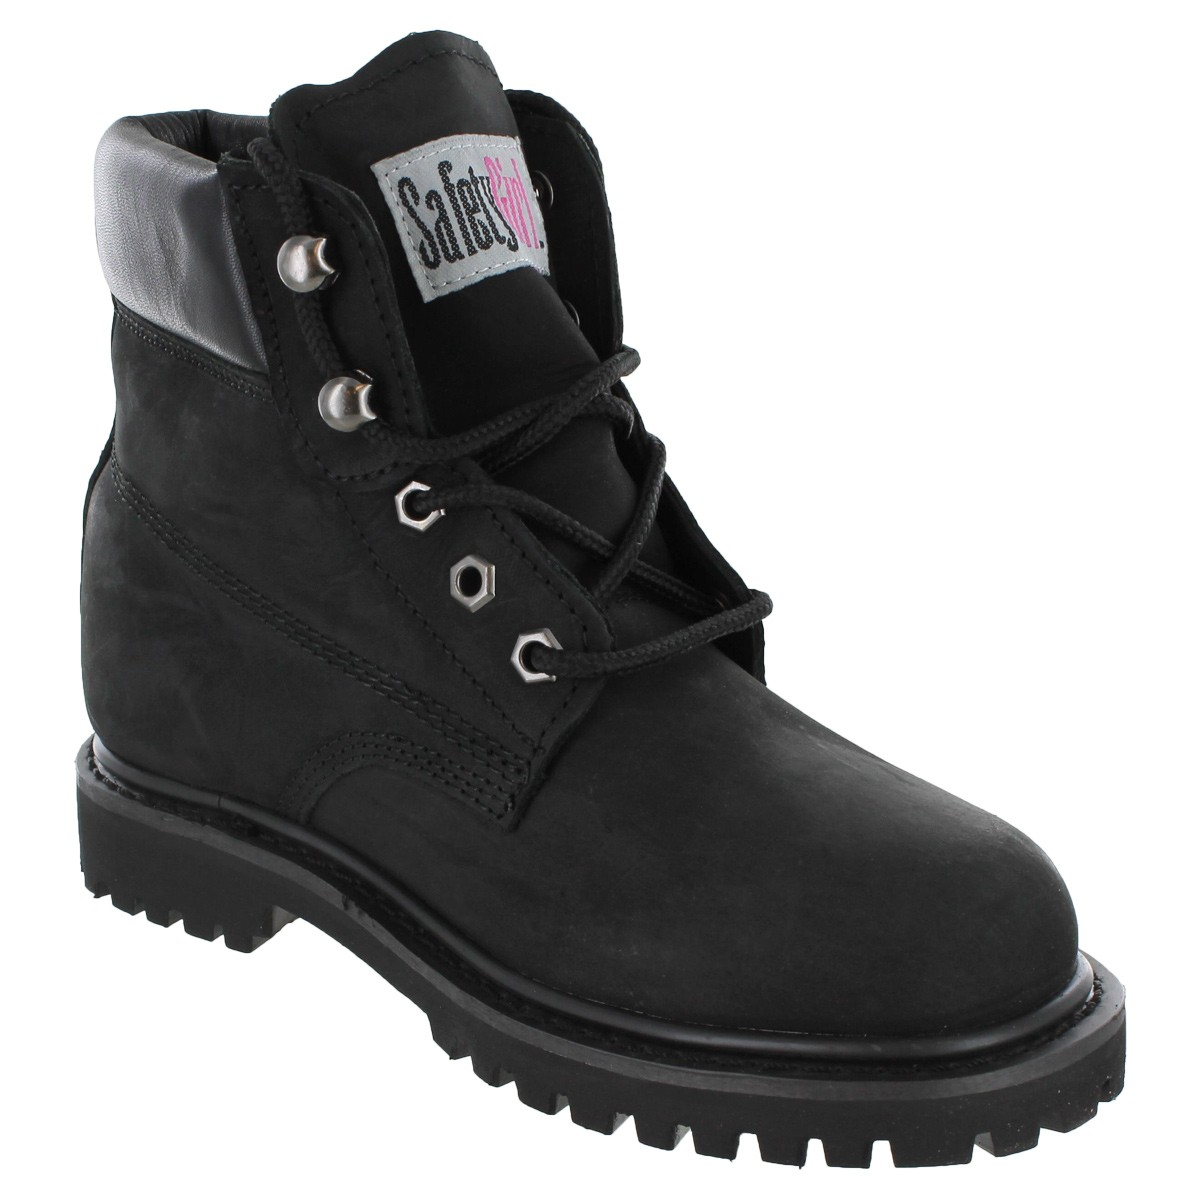 Steel Toe Work Boots For Women Qh76qkb4